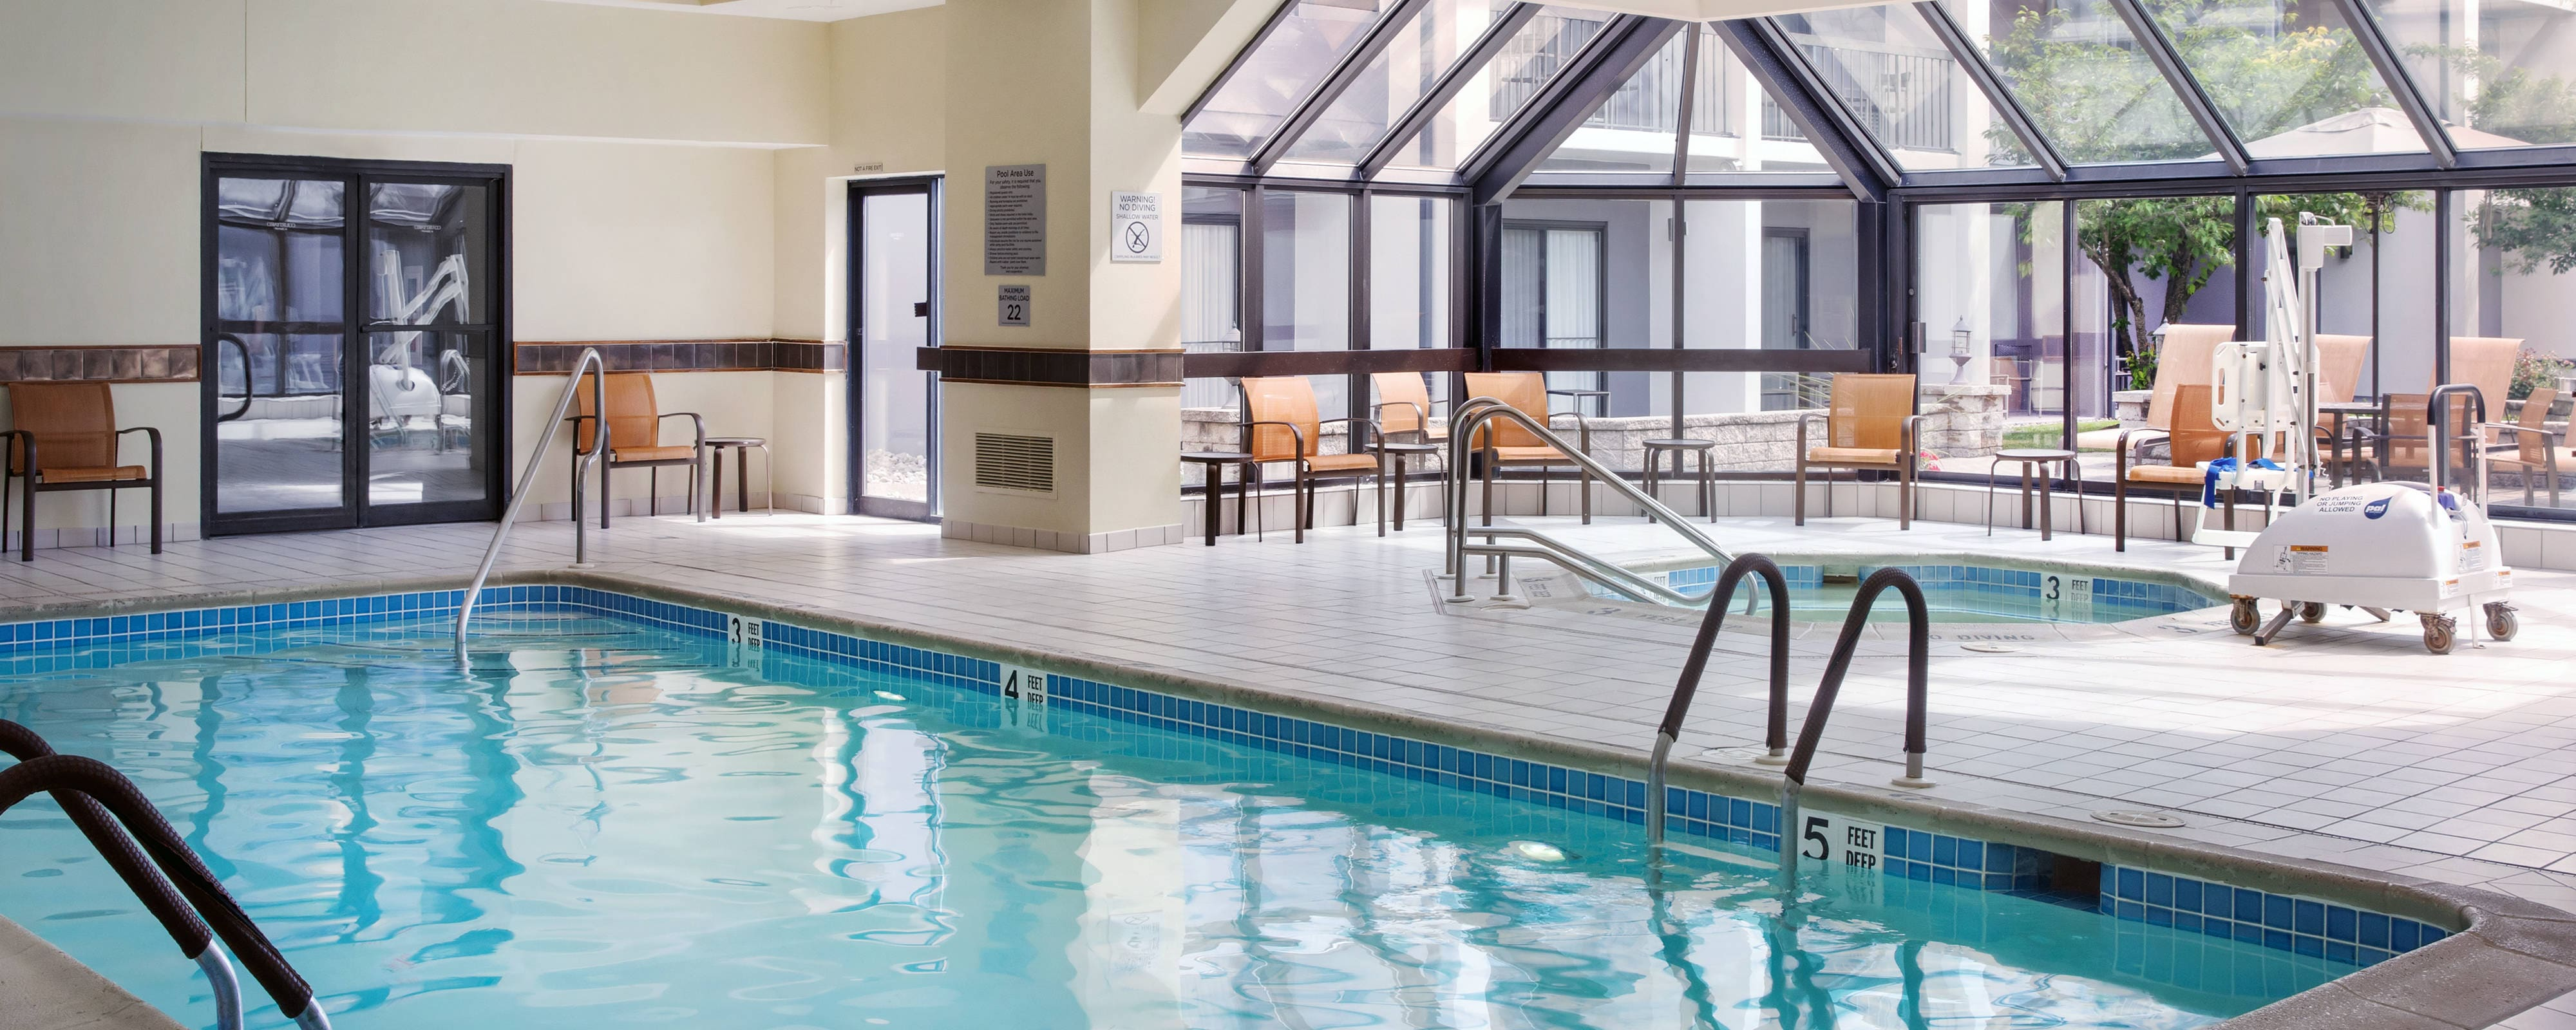 Hotels In Willow Grove, PA With Indoor Pool And Gym